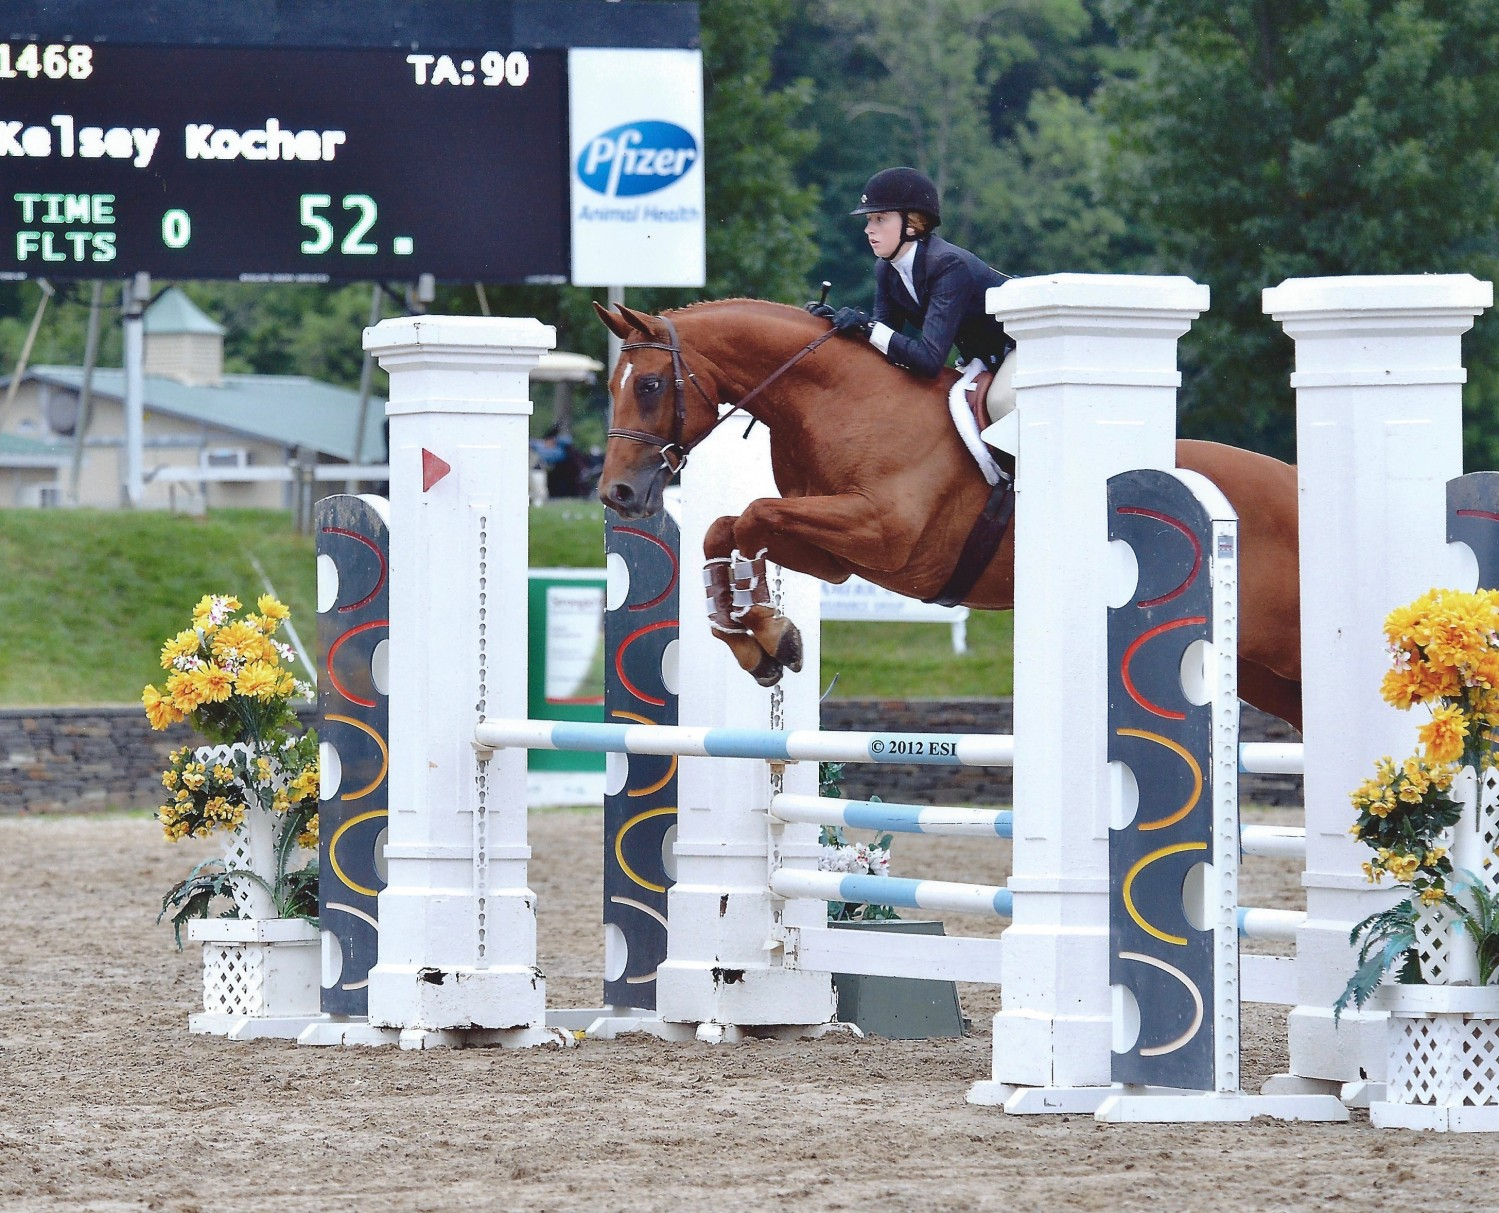 Lookout and Kelsey Kocher, Saugerties NY 2012